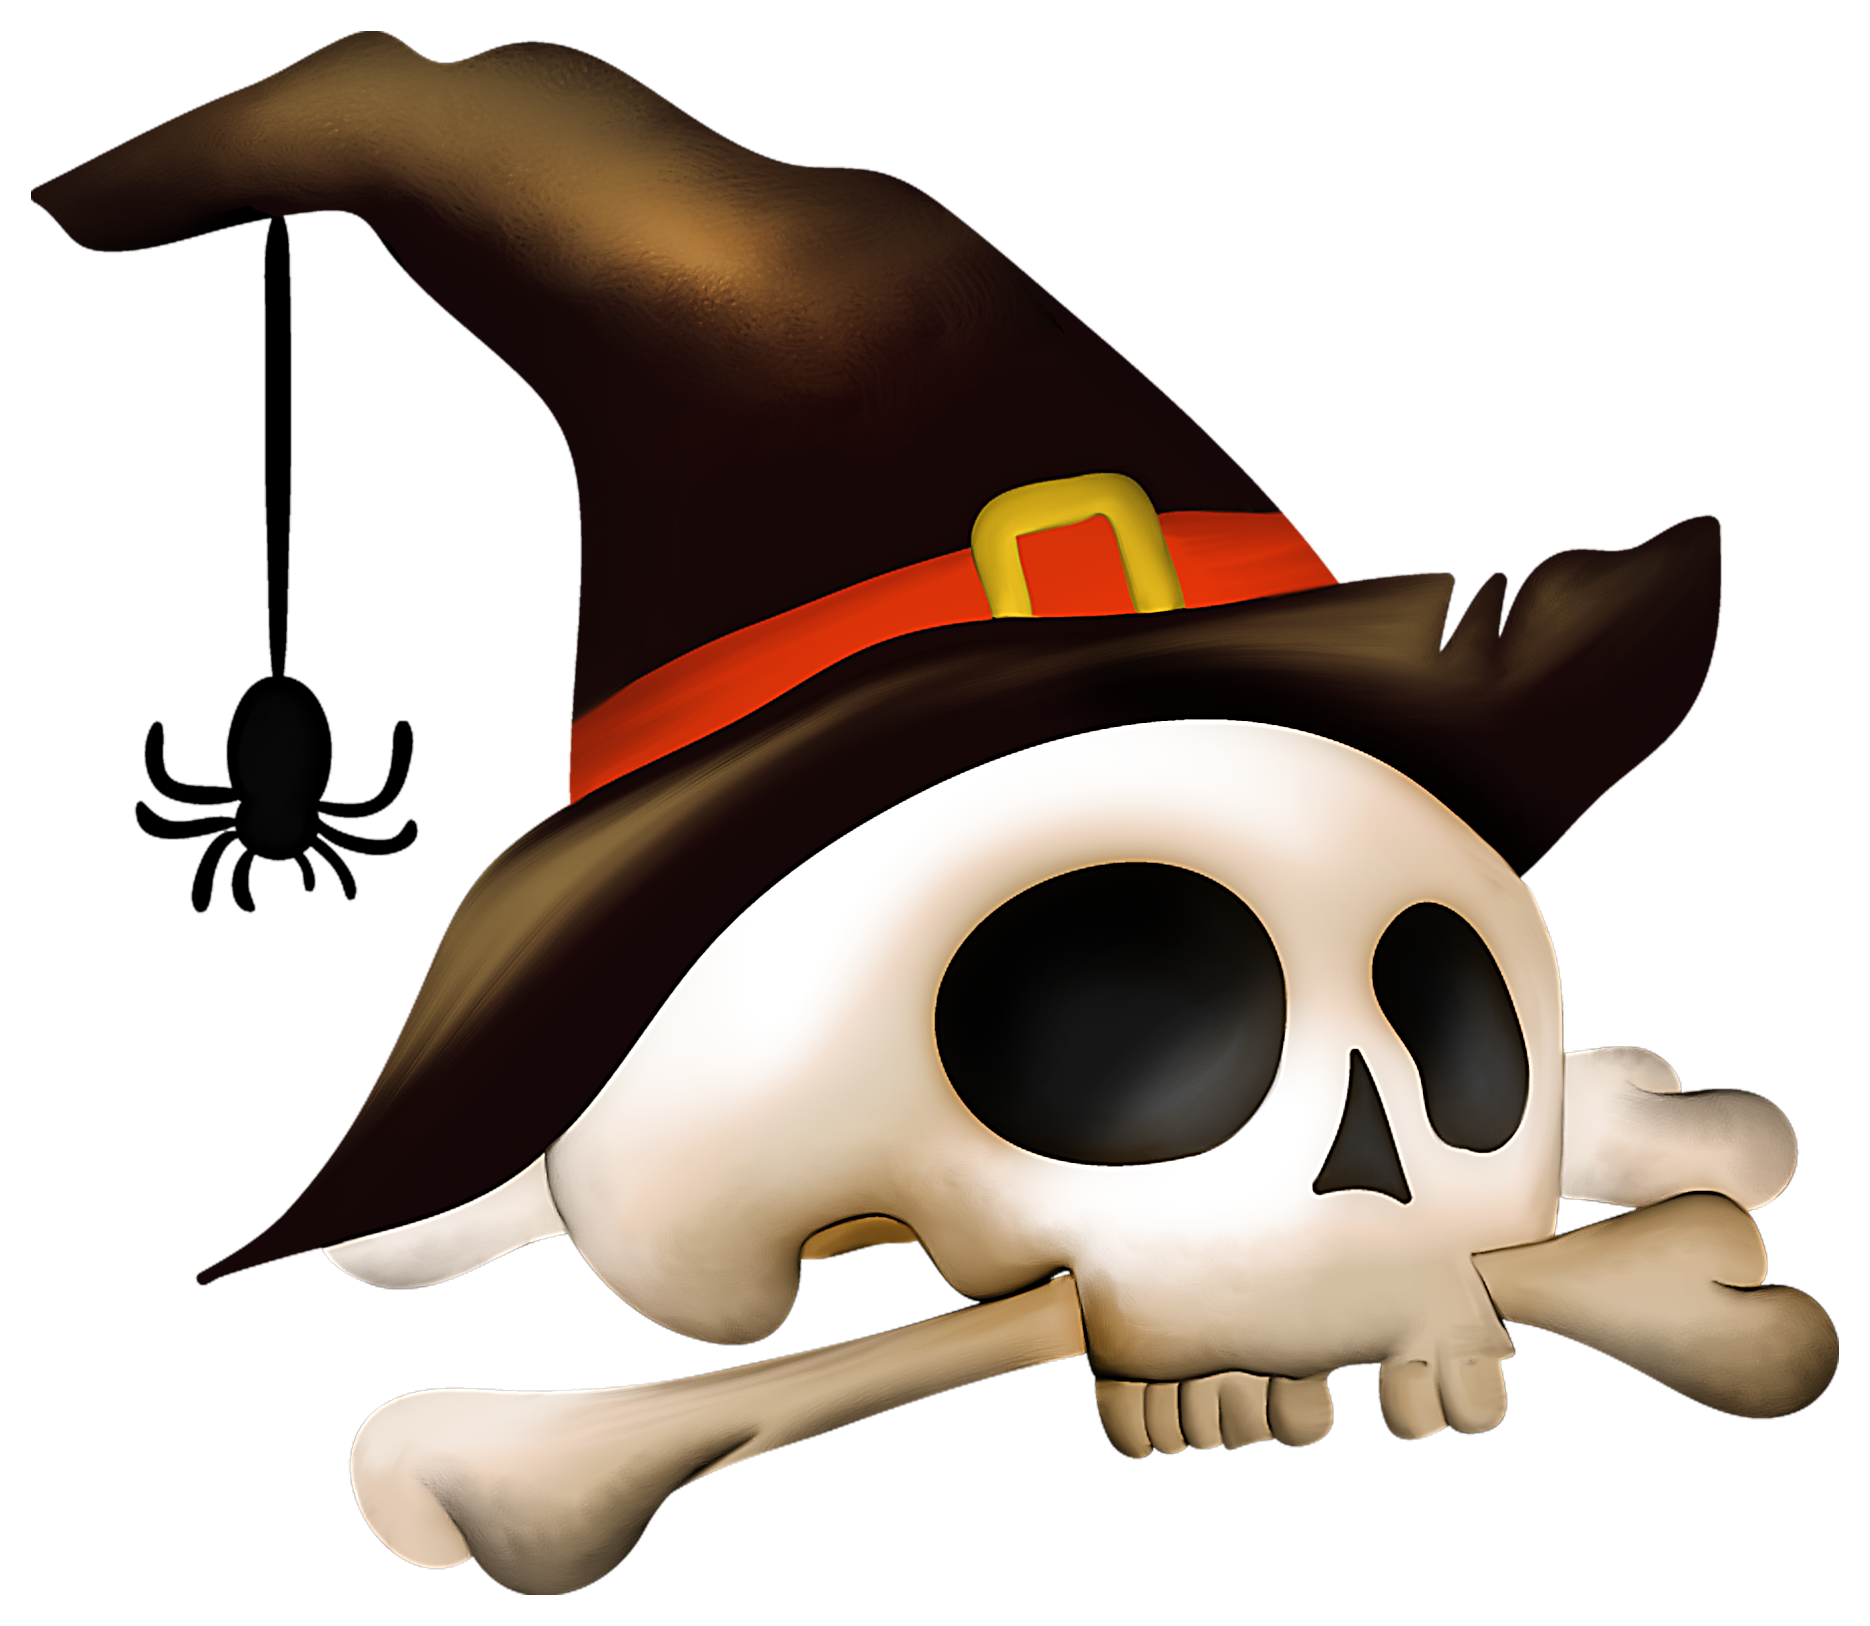 Halloween png images. Skull with bone and